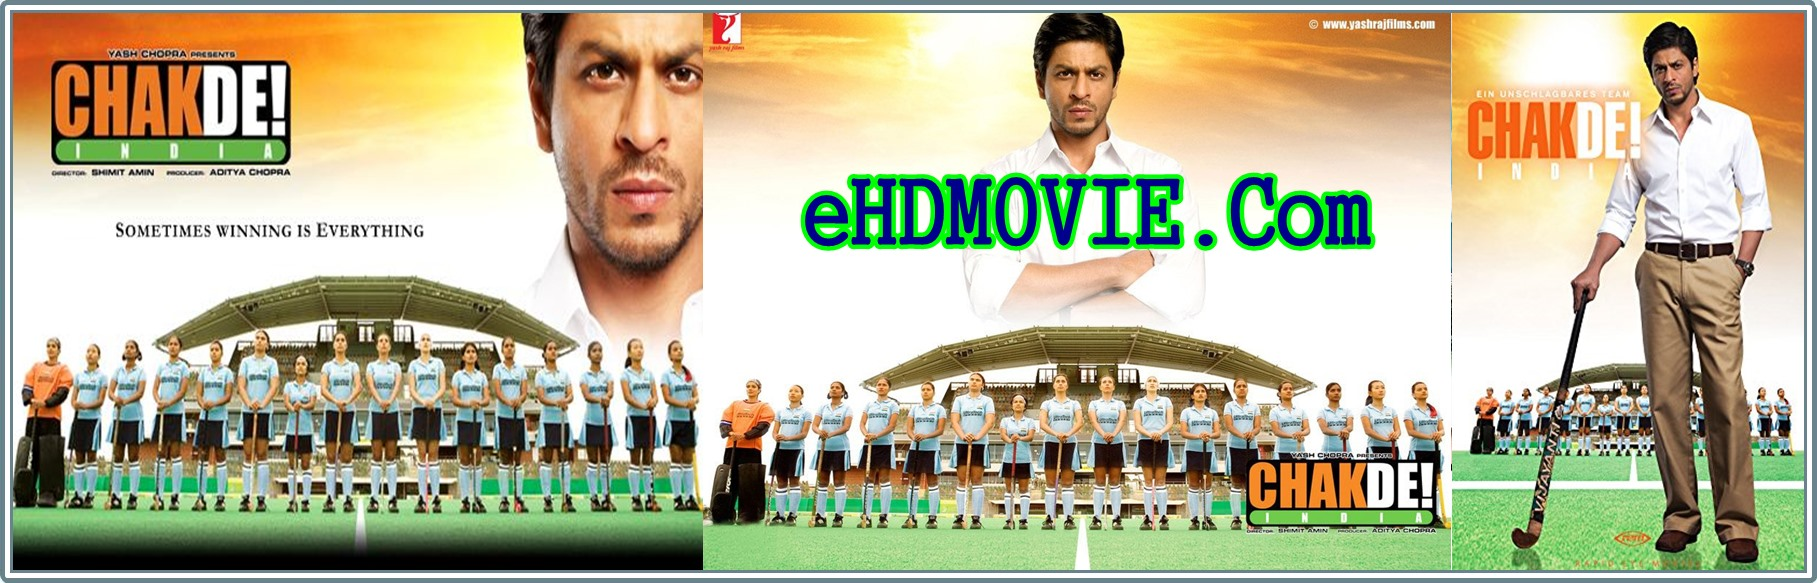 Chak De India 2007 Full Movie Hindi 720p - 480p ORG BRRip 450MB - 1.6GB ESubs Free Download